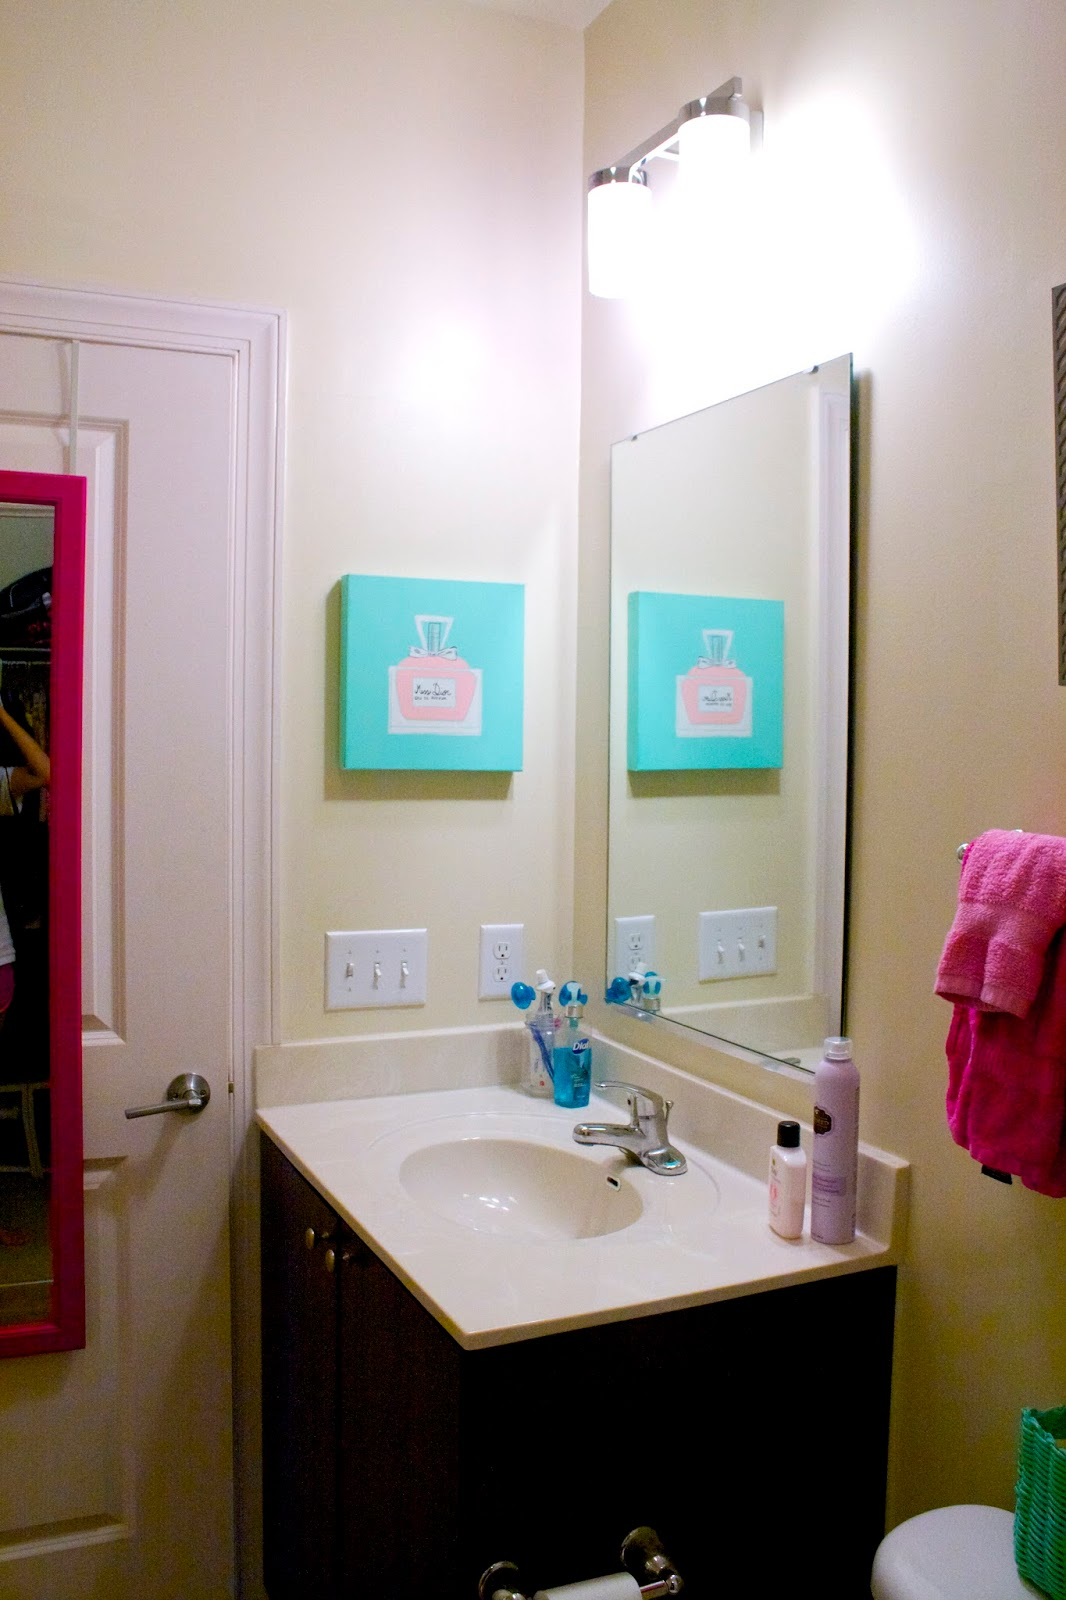 Bathroom Details   Pink Over The Door Mirror|| Hot Pink Body Towels || Hot  Pink Face Towels|| Small Pink Hand Towels || Grey Shadow Box Shelf: TJ Maxx